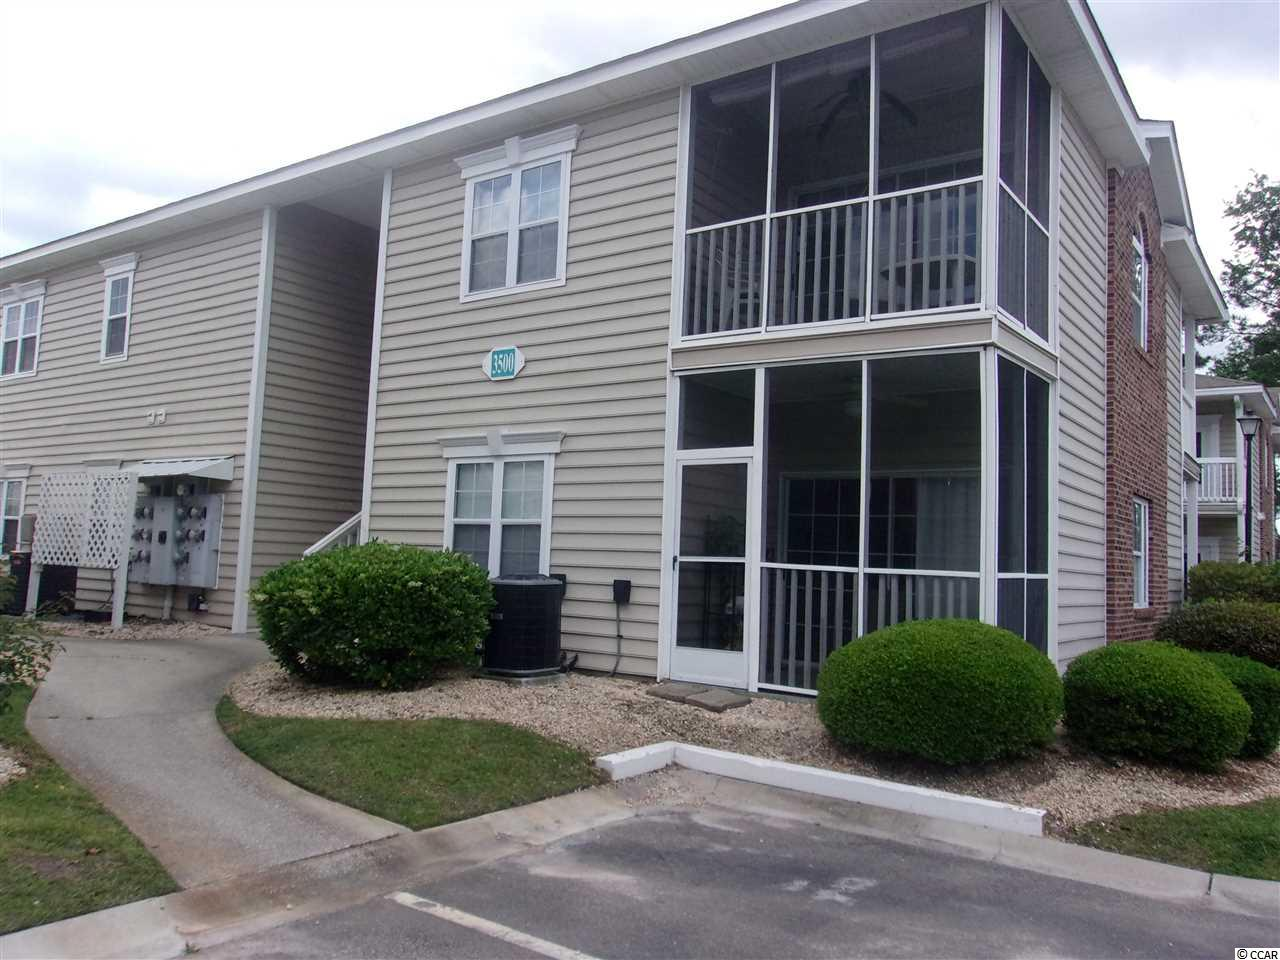 Adorable first floor condo in desirable Sweetwater subdivision. Features include 2 bedrooms and 2 full baths, large living area, kitchen with lots of cabinet space, laminate hardwood floors in living area and tile in baths and kitchen. Second bedroom with Murphy Bed. Very roomy when pulled up. Bedrooms have carpet. HVAC system approximately 5 years old. Original owners enclosed screened porch, now a heated and cooled sun room. Storage closet on porch, plenty of storage space throughout. Great location close to beach, restaurants, shopping and golf. See today!!